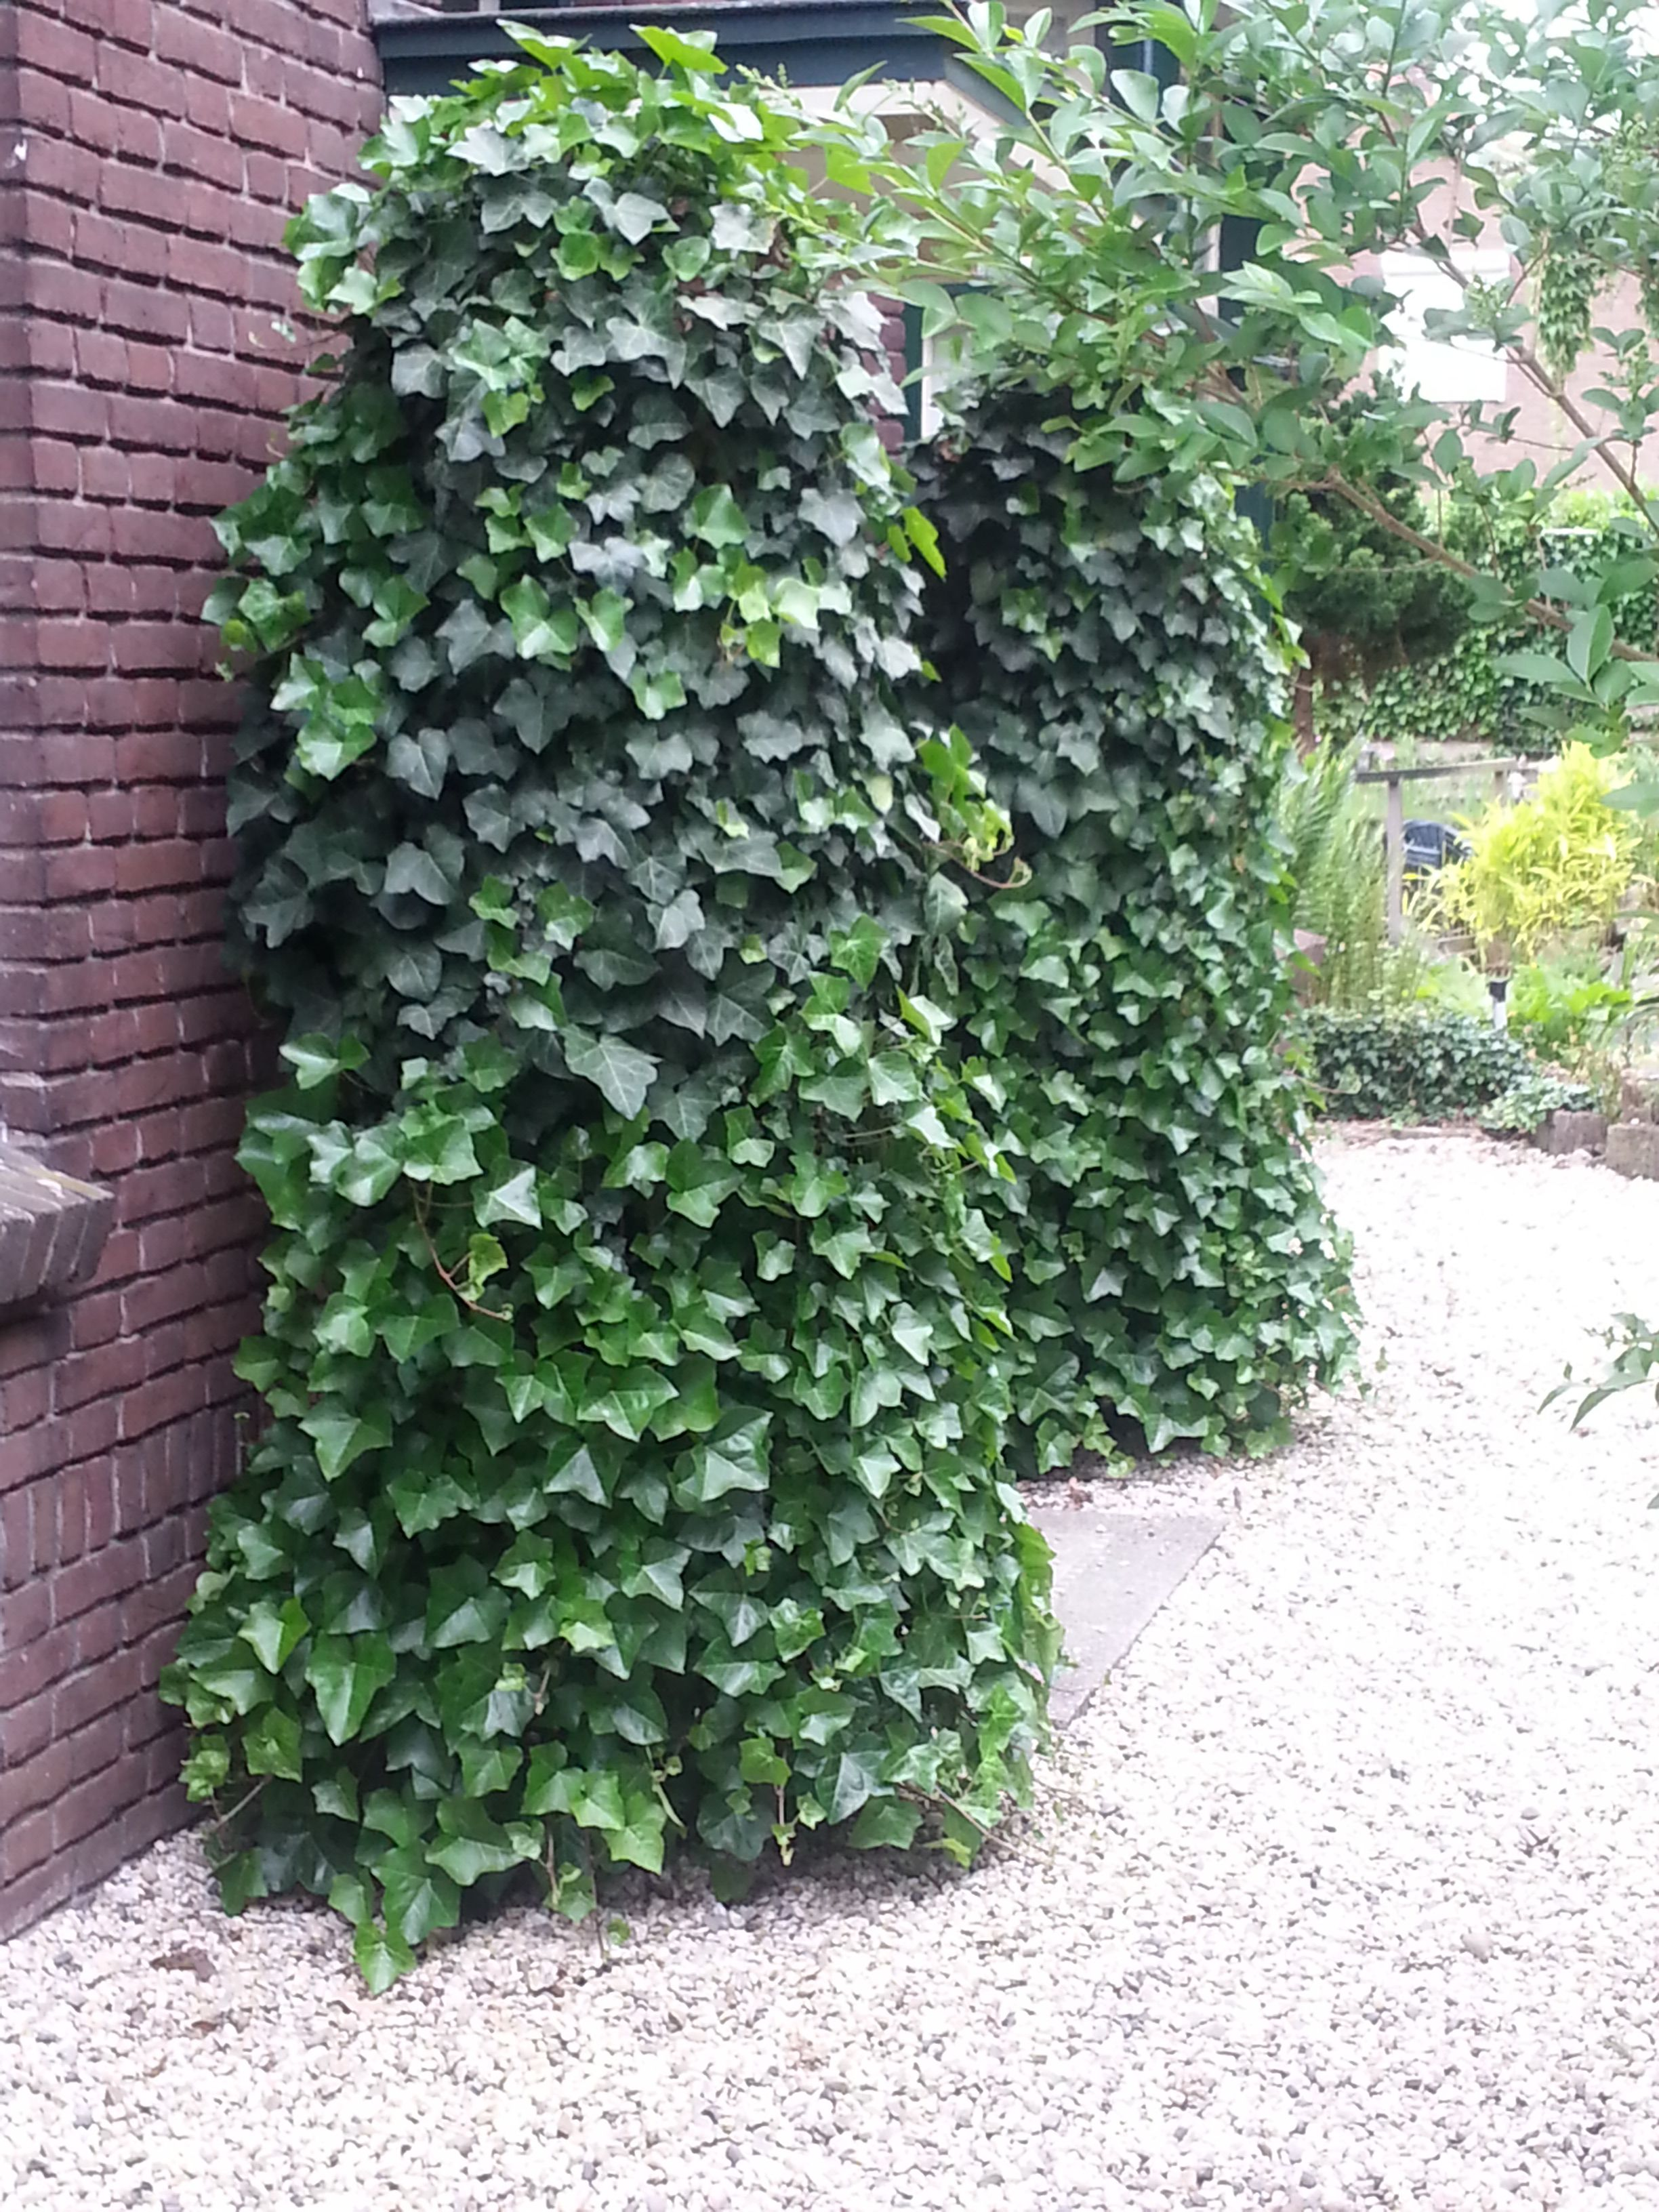 The evergreen Hedera, one of the most suitable Climbing